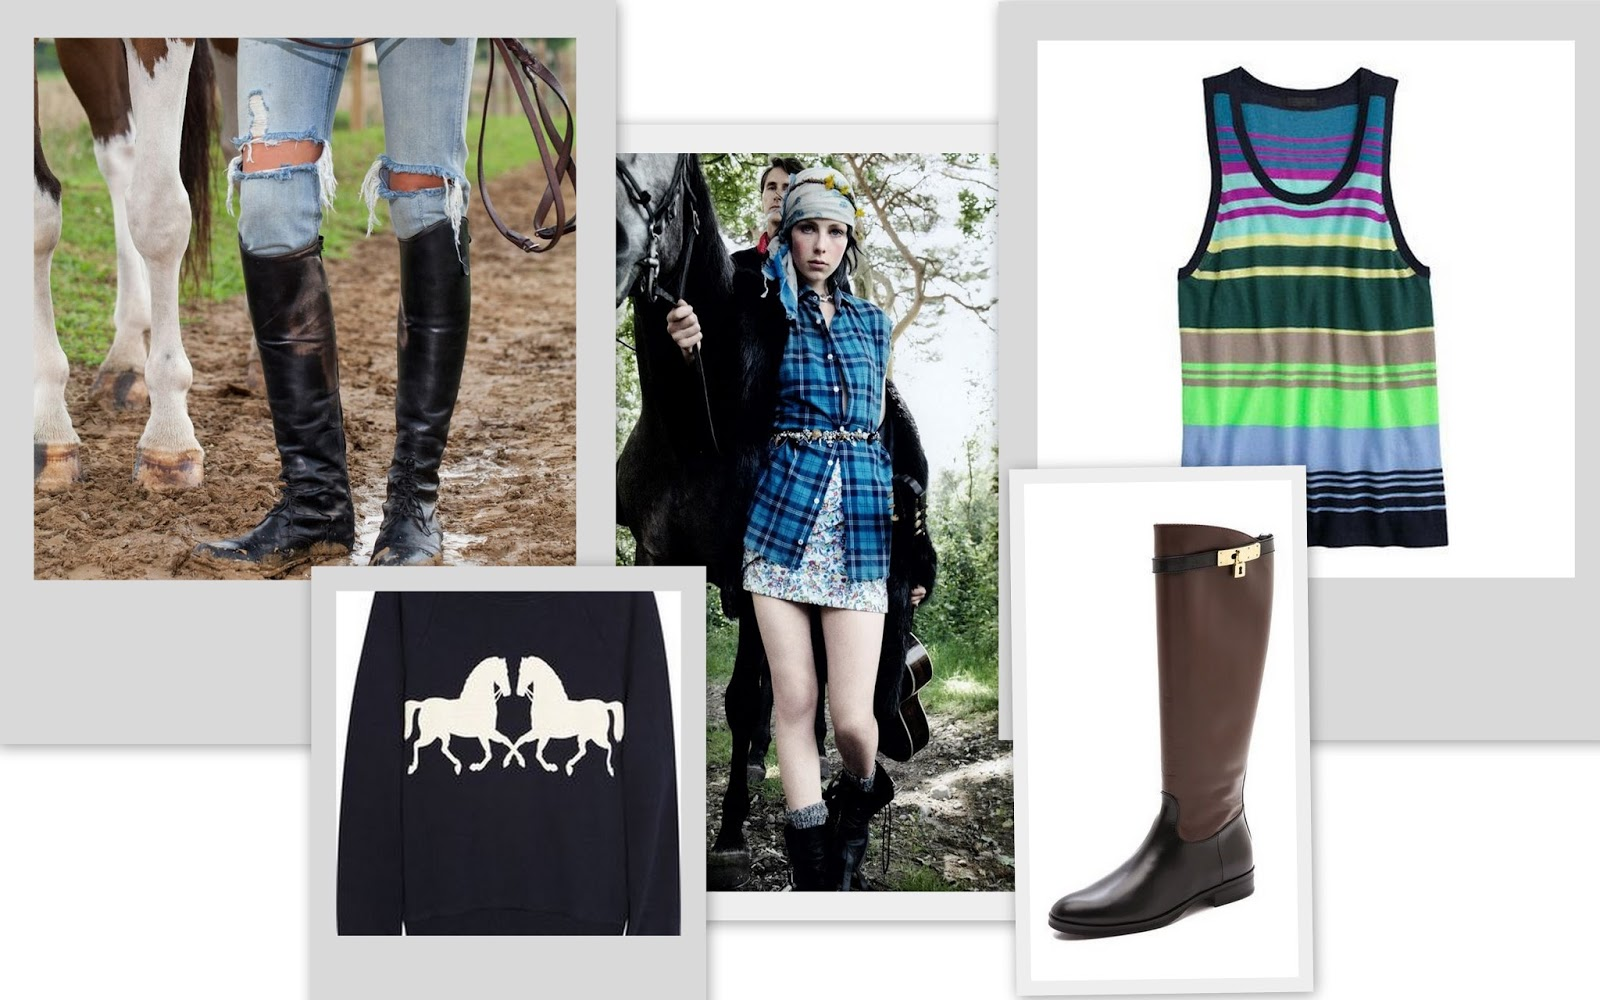 Rding boots, custom made riding boots, The elder statesman, edie Campbell, grunge, plaid and florals